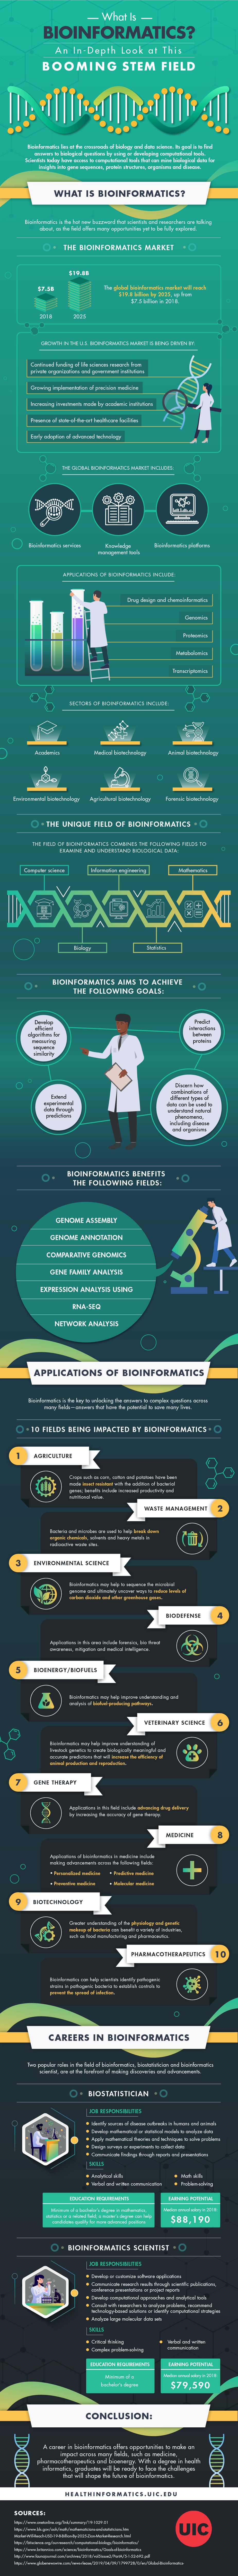 How bioinformatics is using data science to advance the work in several biotechnology sectors.